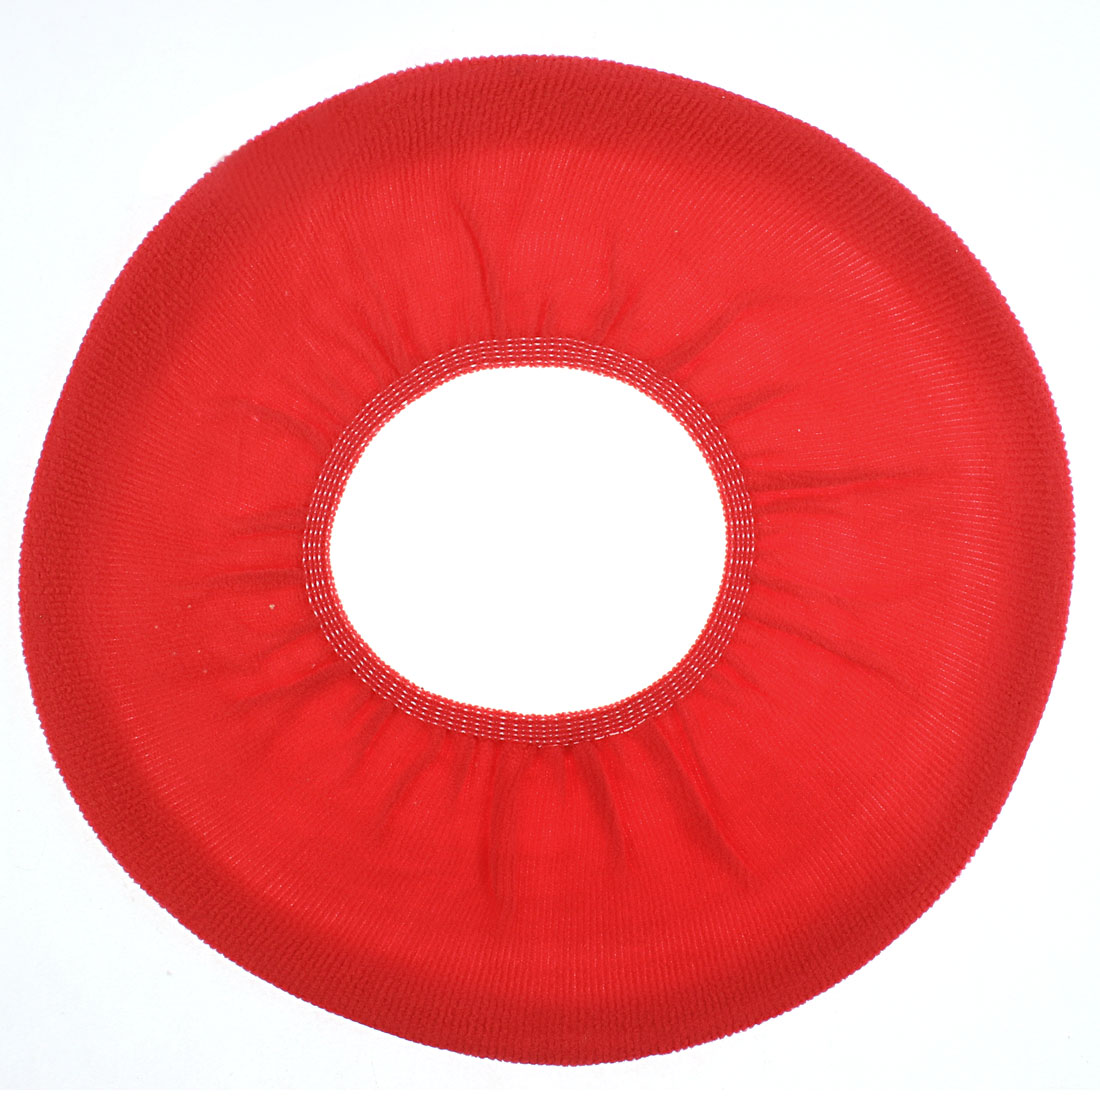 Home Bathroom Fleece Warmer Toilet Seat Lid Cover Cloth Mat Cushion Red